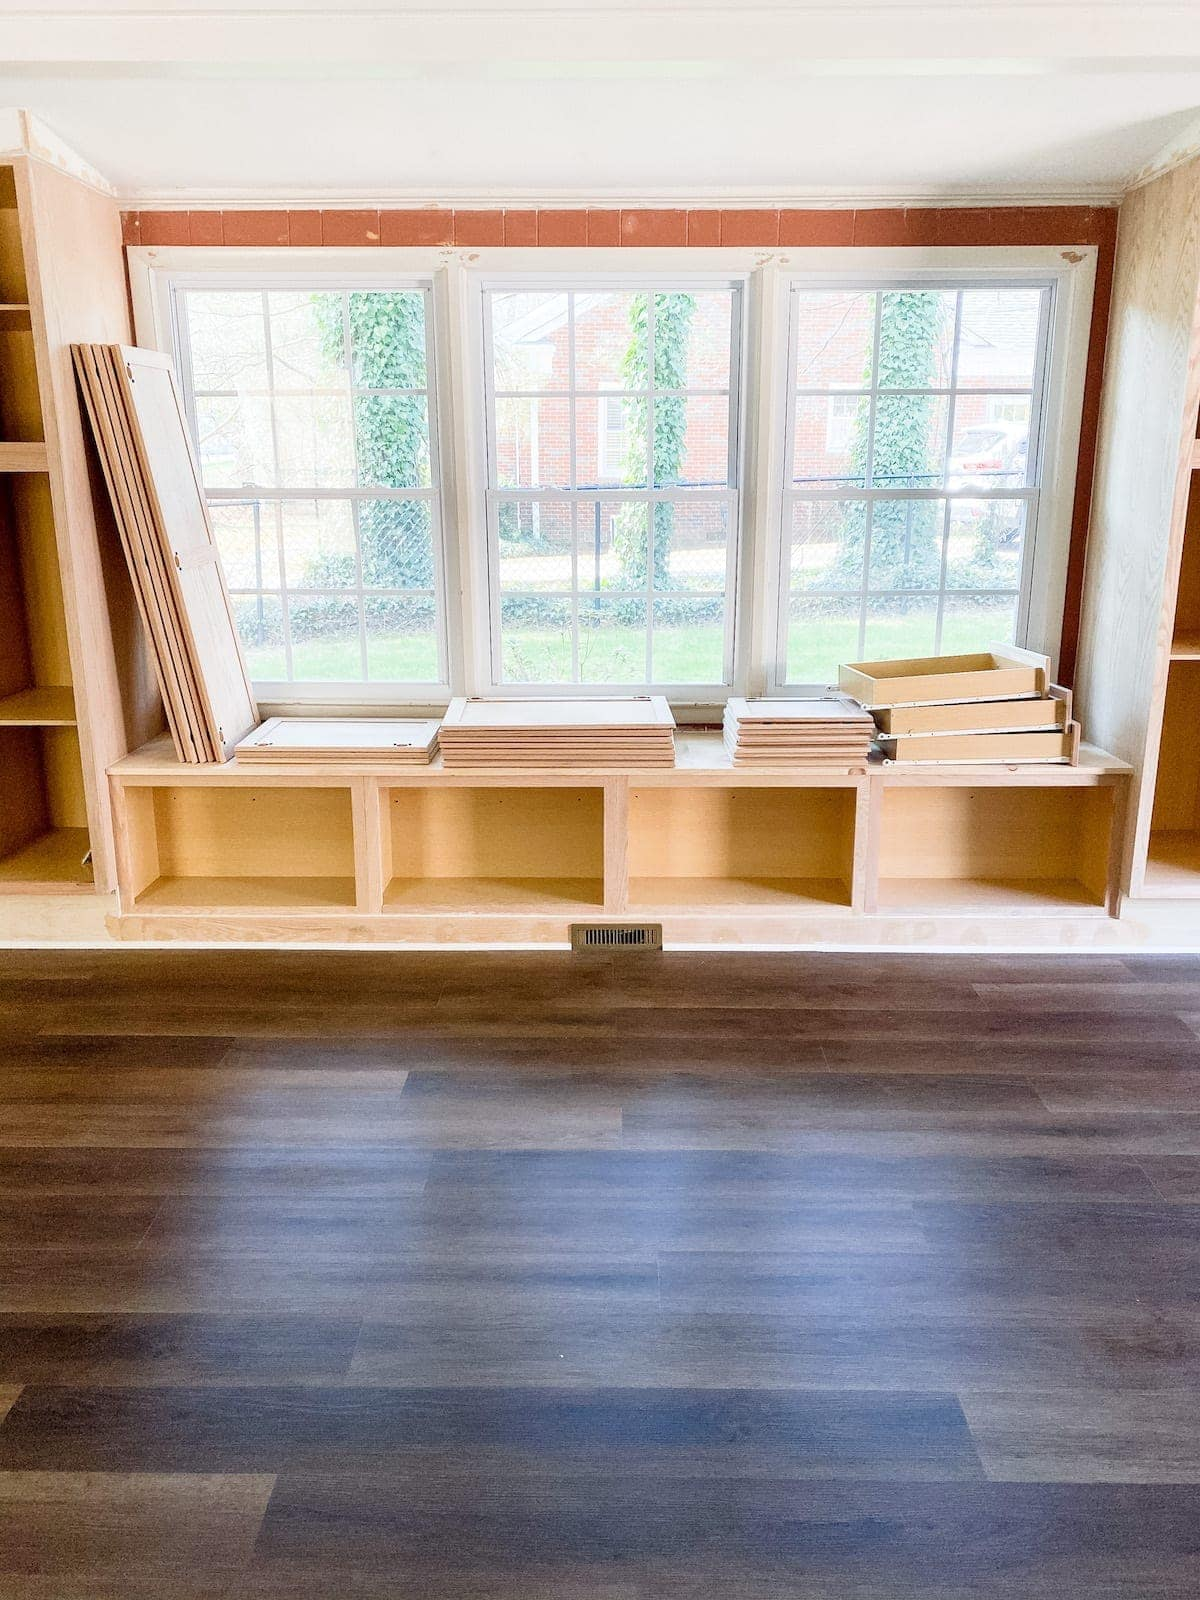 luxury vinyl plank flooring with DIY built-in cabinets and window seat